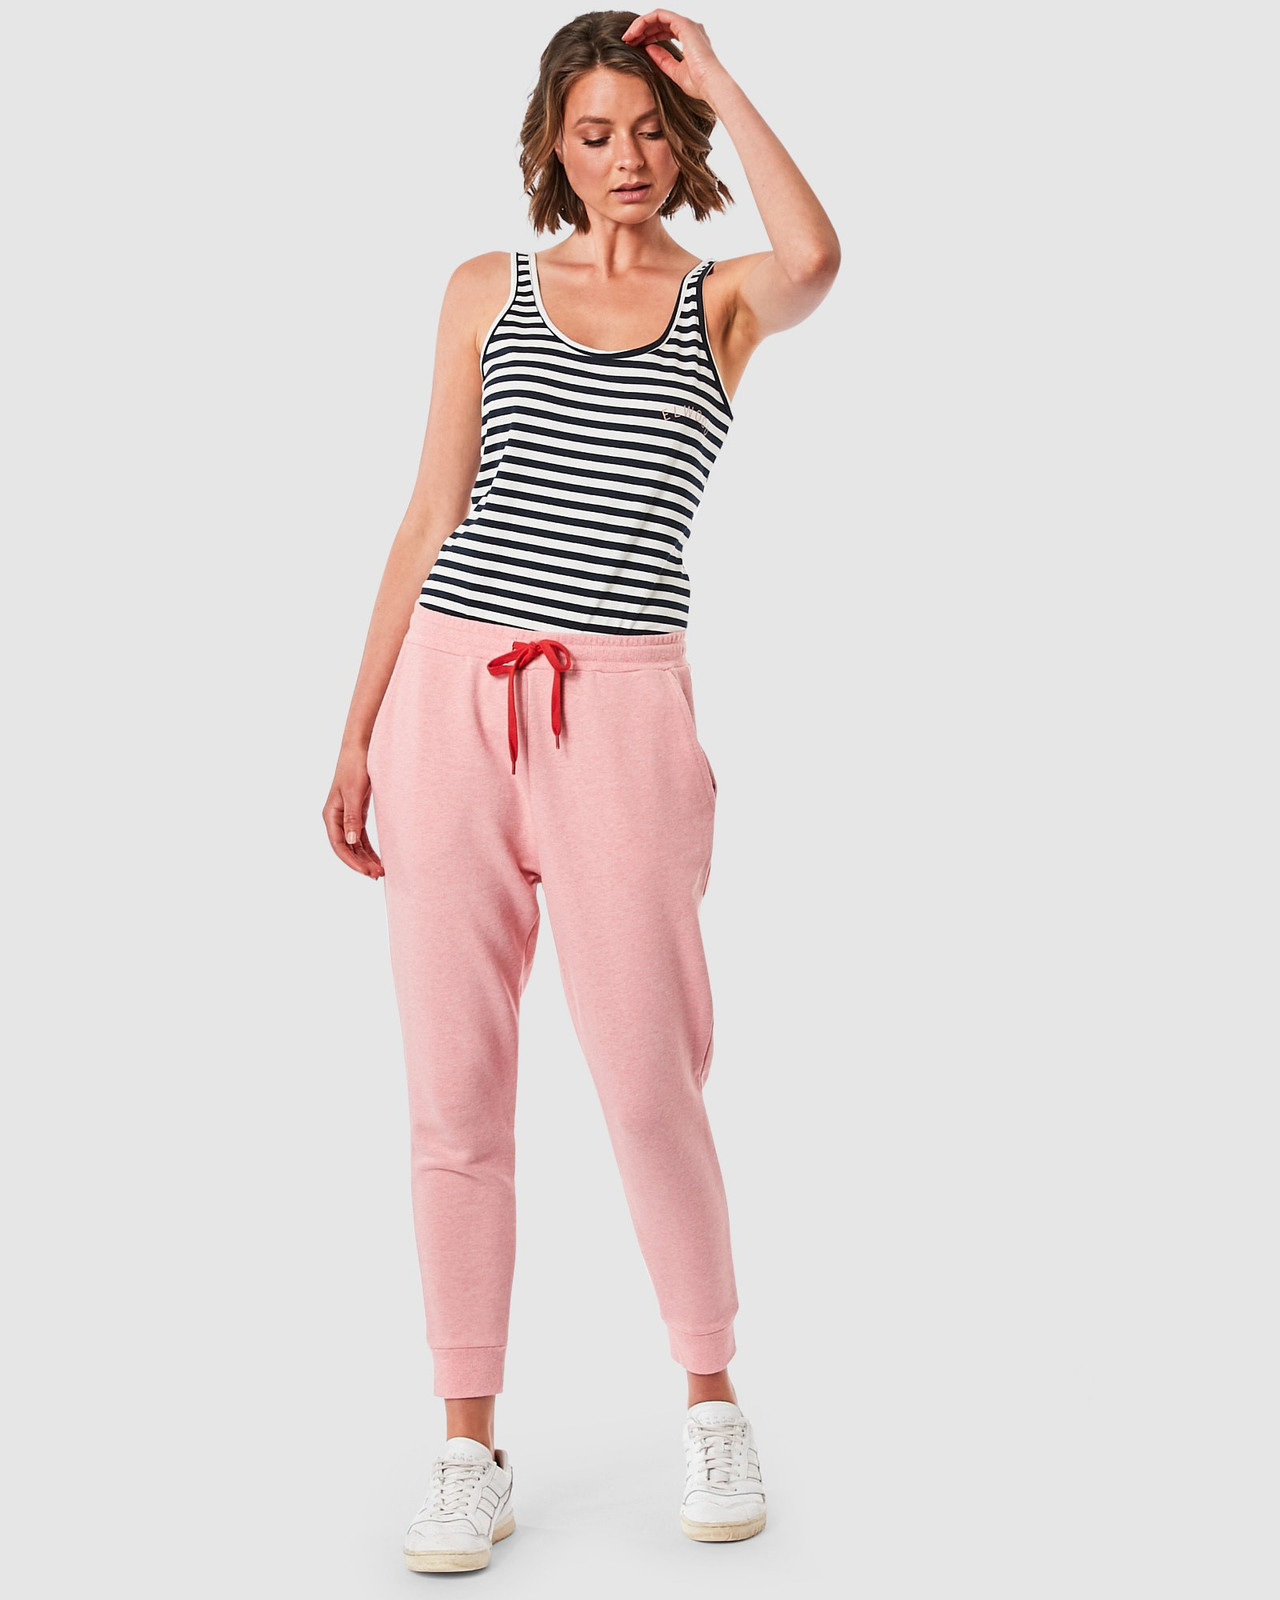 Elwood Womens Alice Track Pants Pink